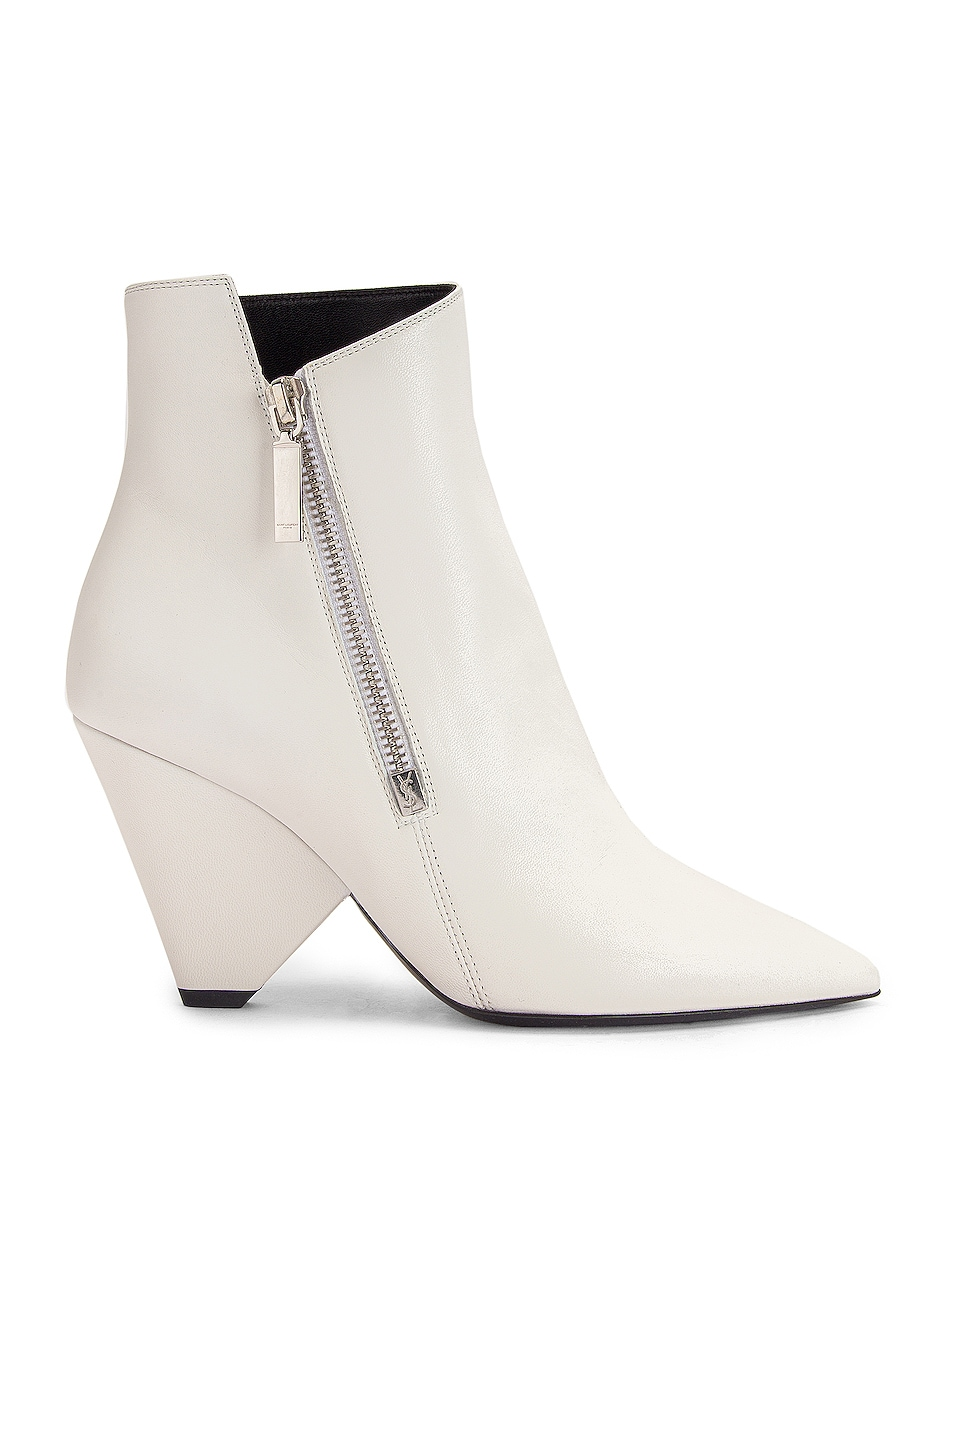 Image 1 of Saint Laurent Niki Zip Booties in White